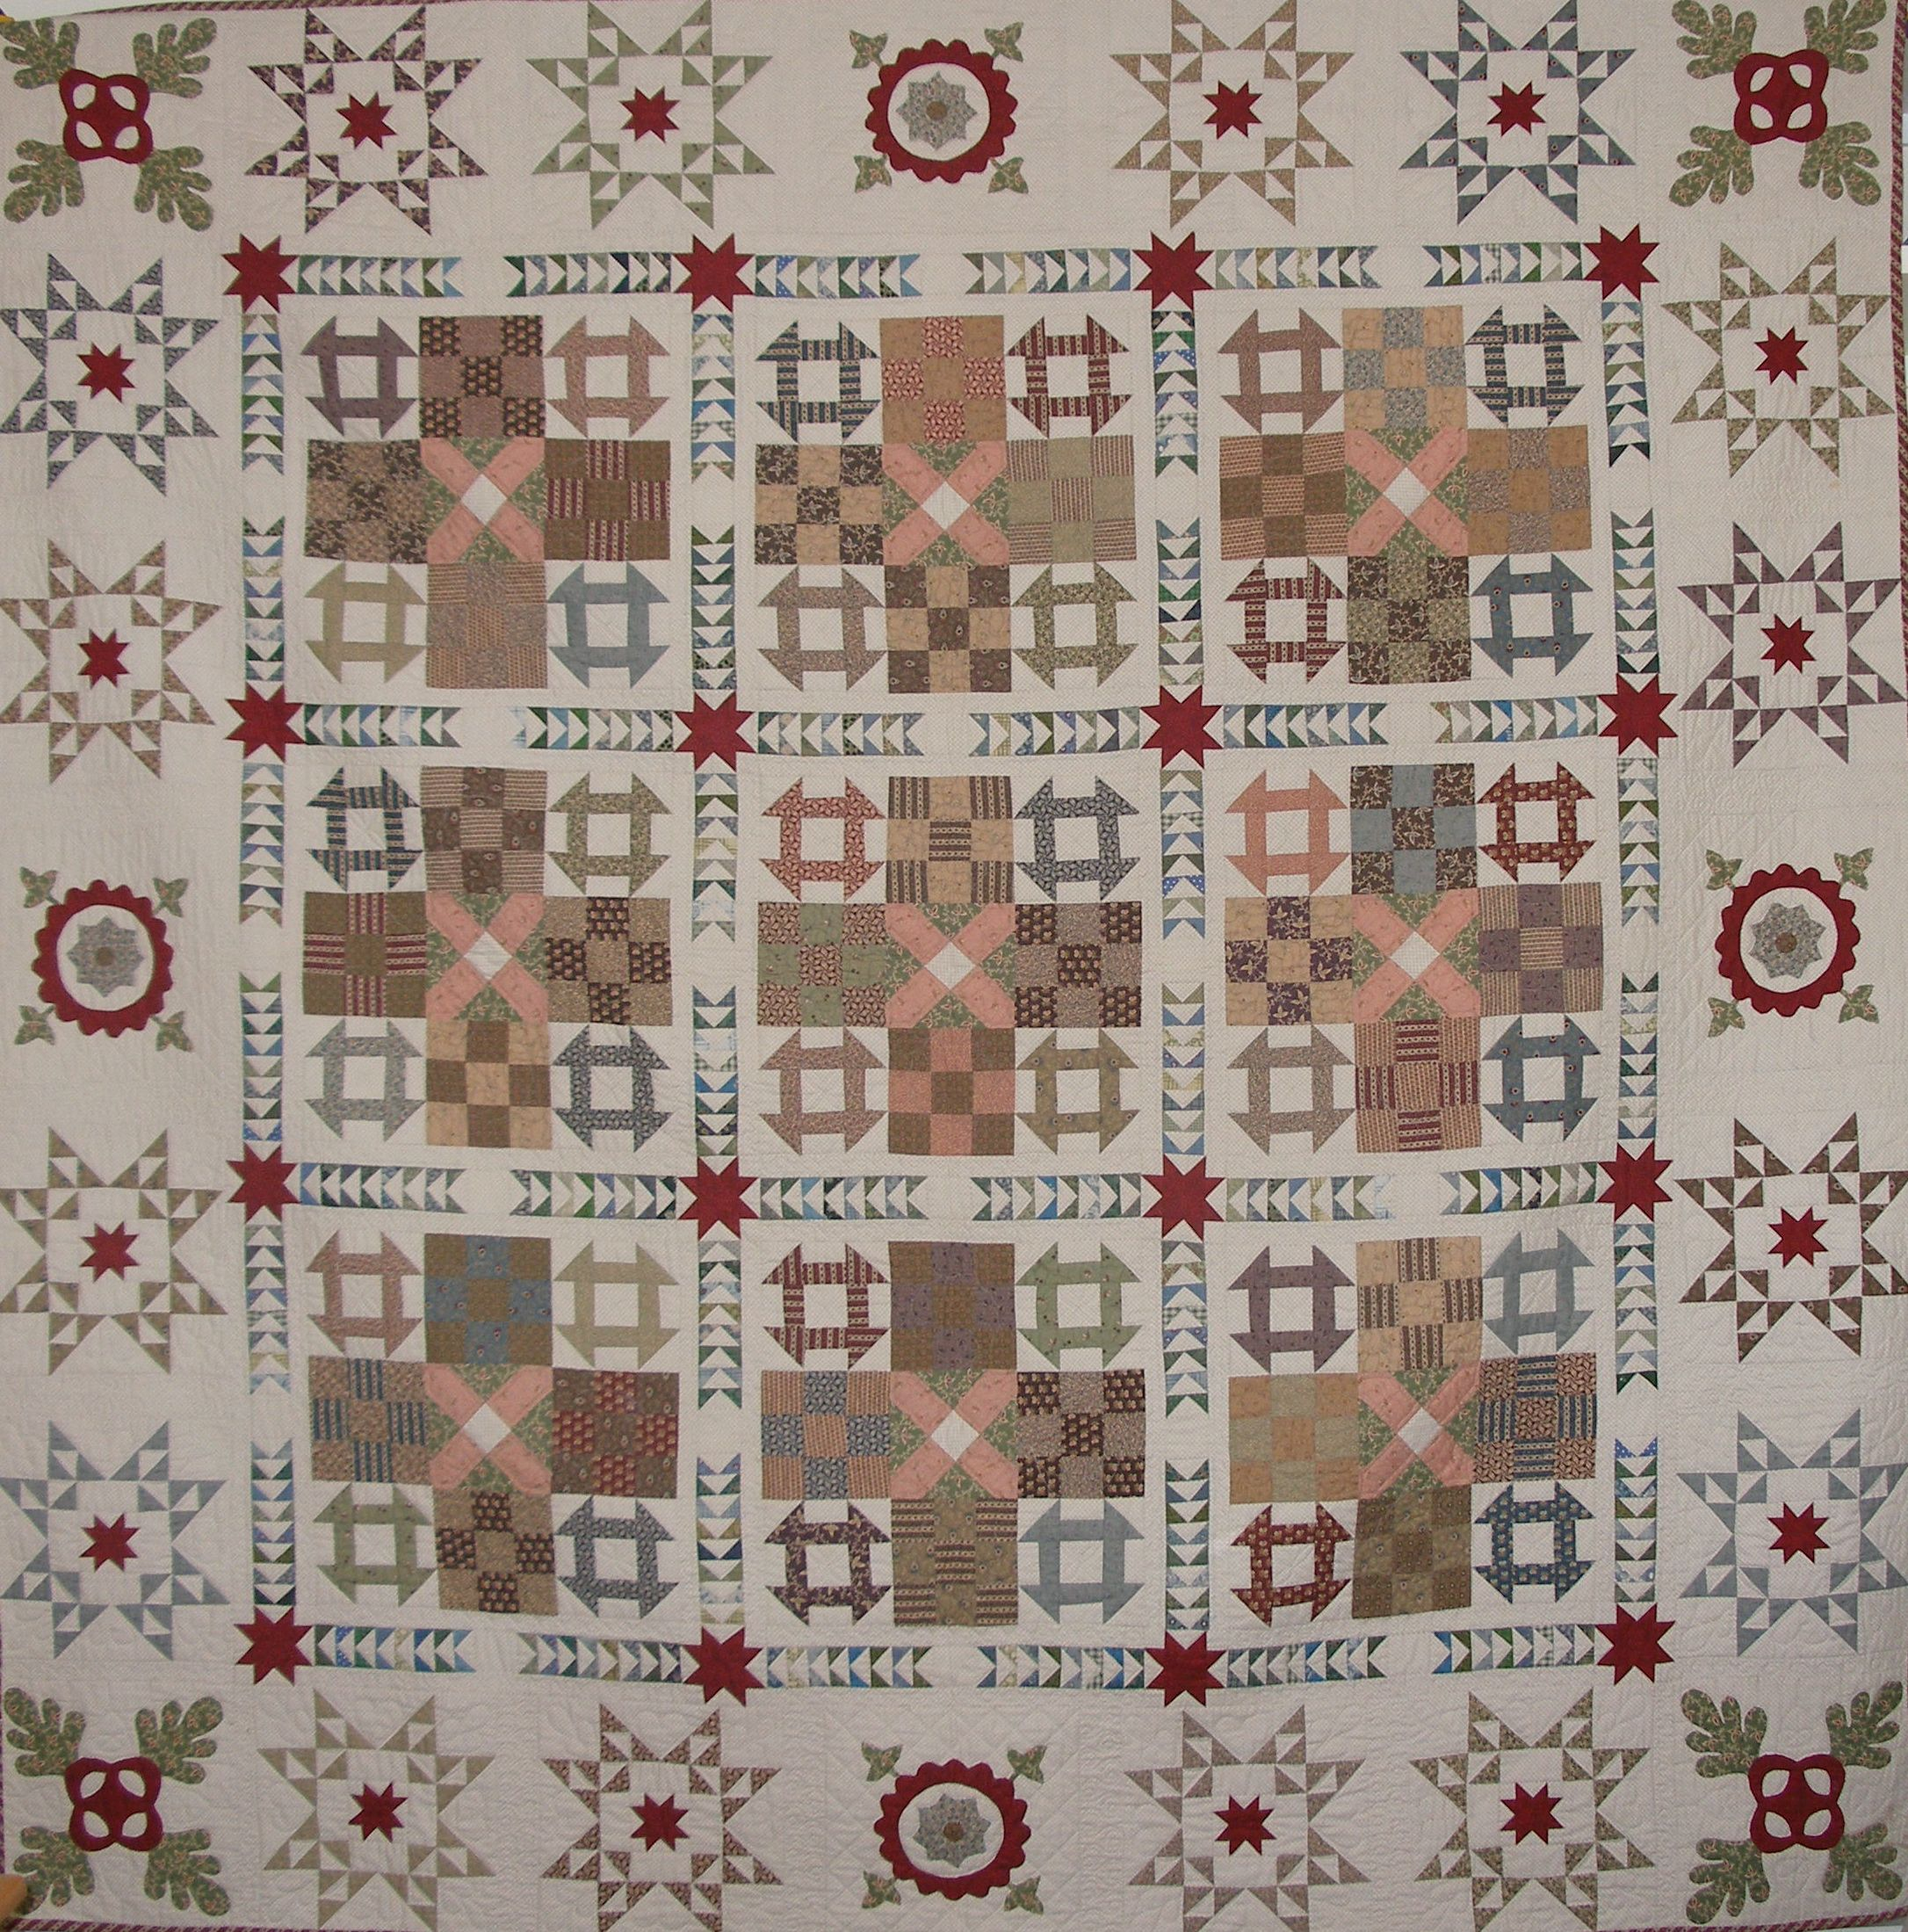 it d feels n half not because quilting means sampler quilts finishing just i quilt this smith blossomheartquilts blogs anymore heart of me is triangle yearly one by hst goooood modern and have to com square last finish b blossom year o e